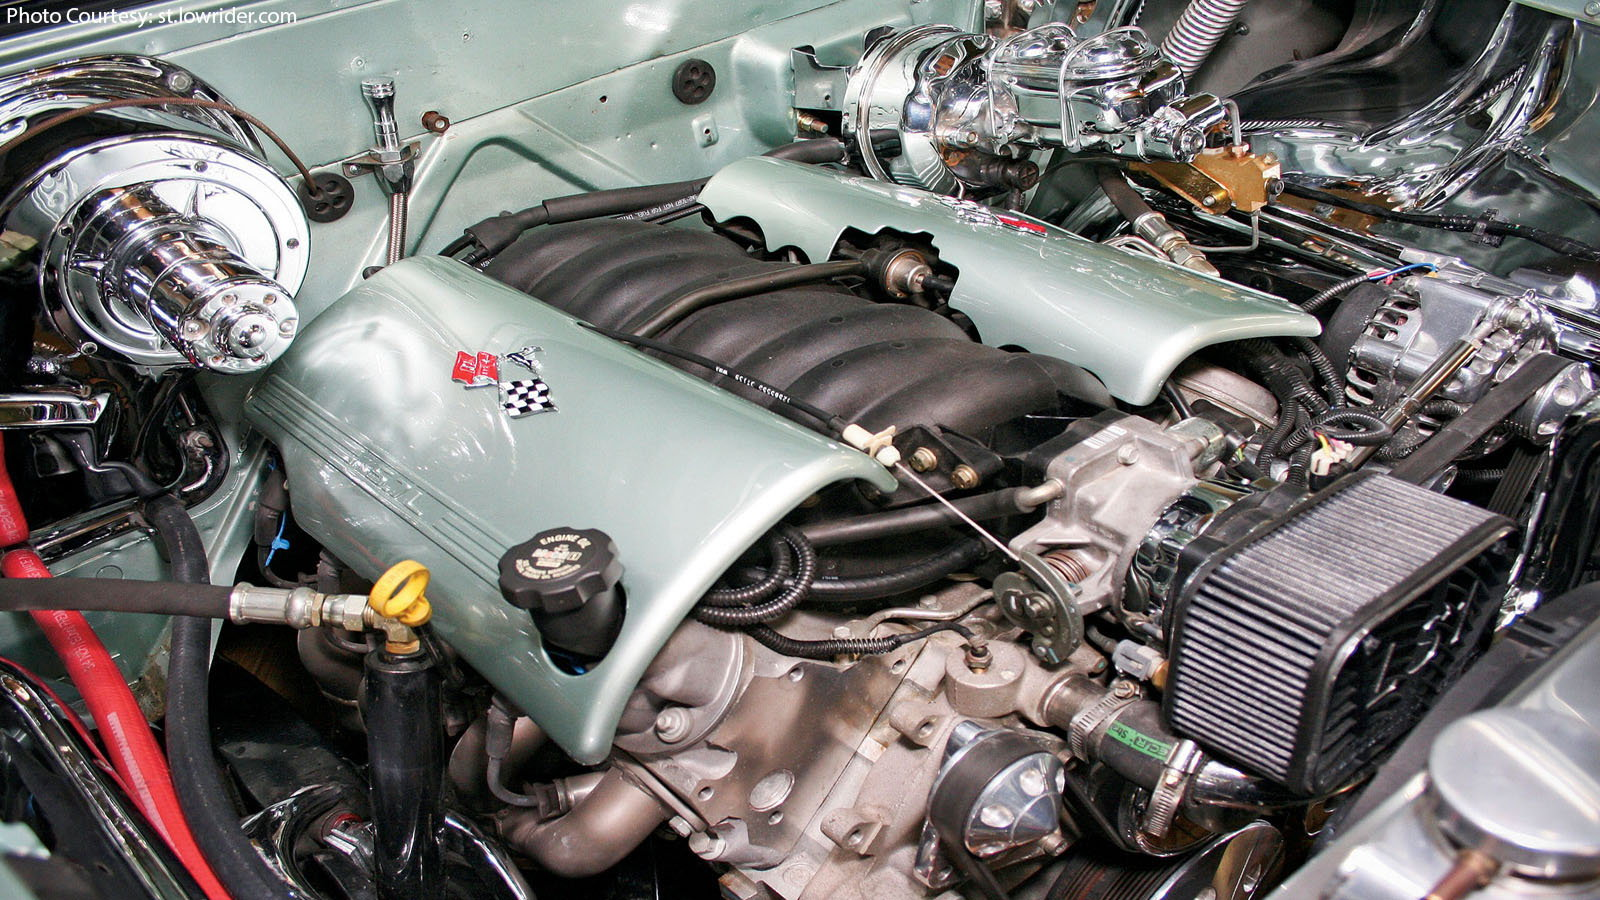 LS1 Engine, Impala, Convertible